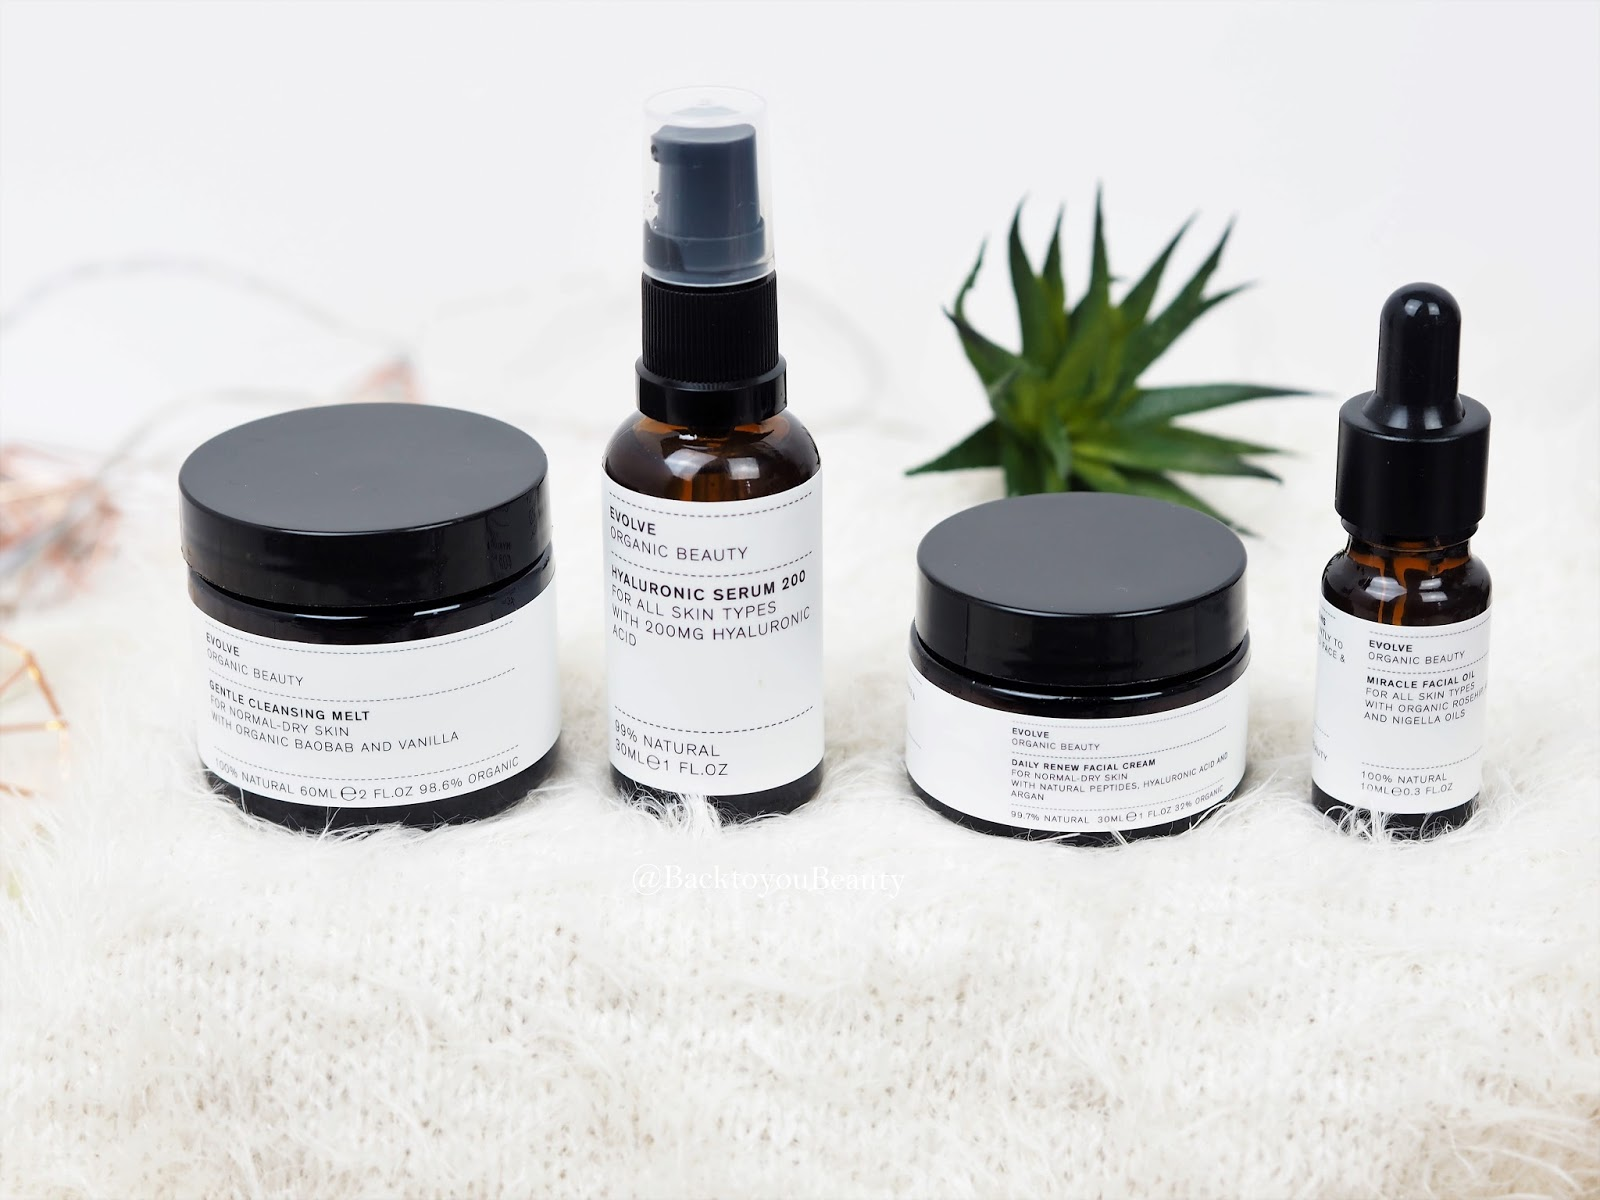 Evolve Organic Beauty 4 Piece Daily Skincare Collection